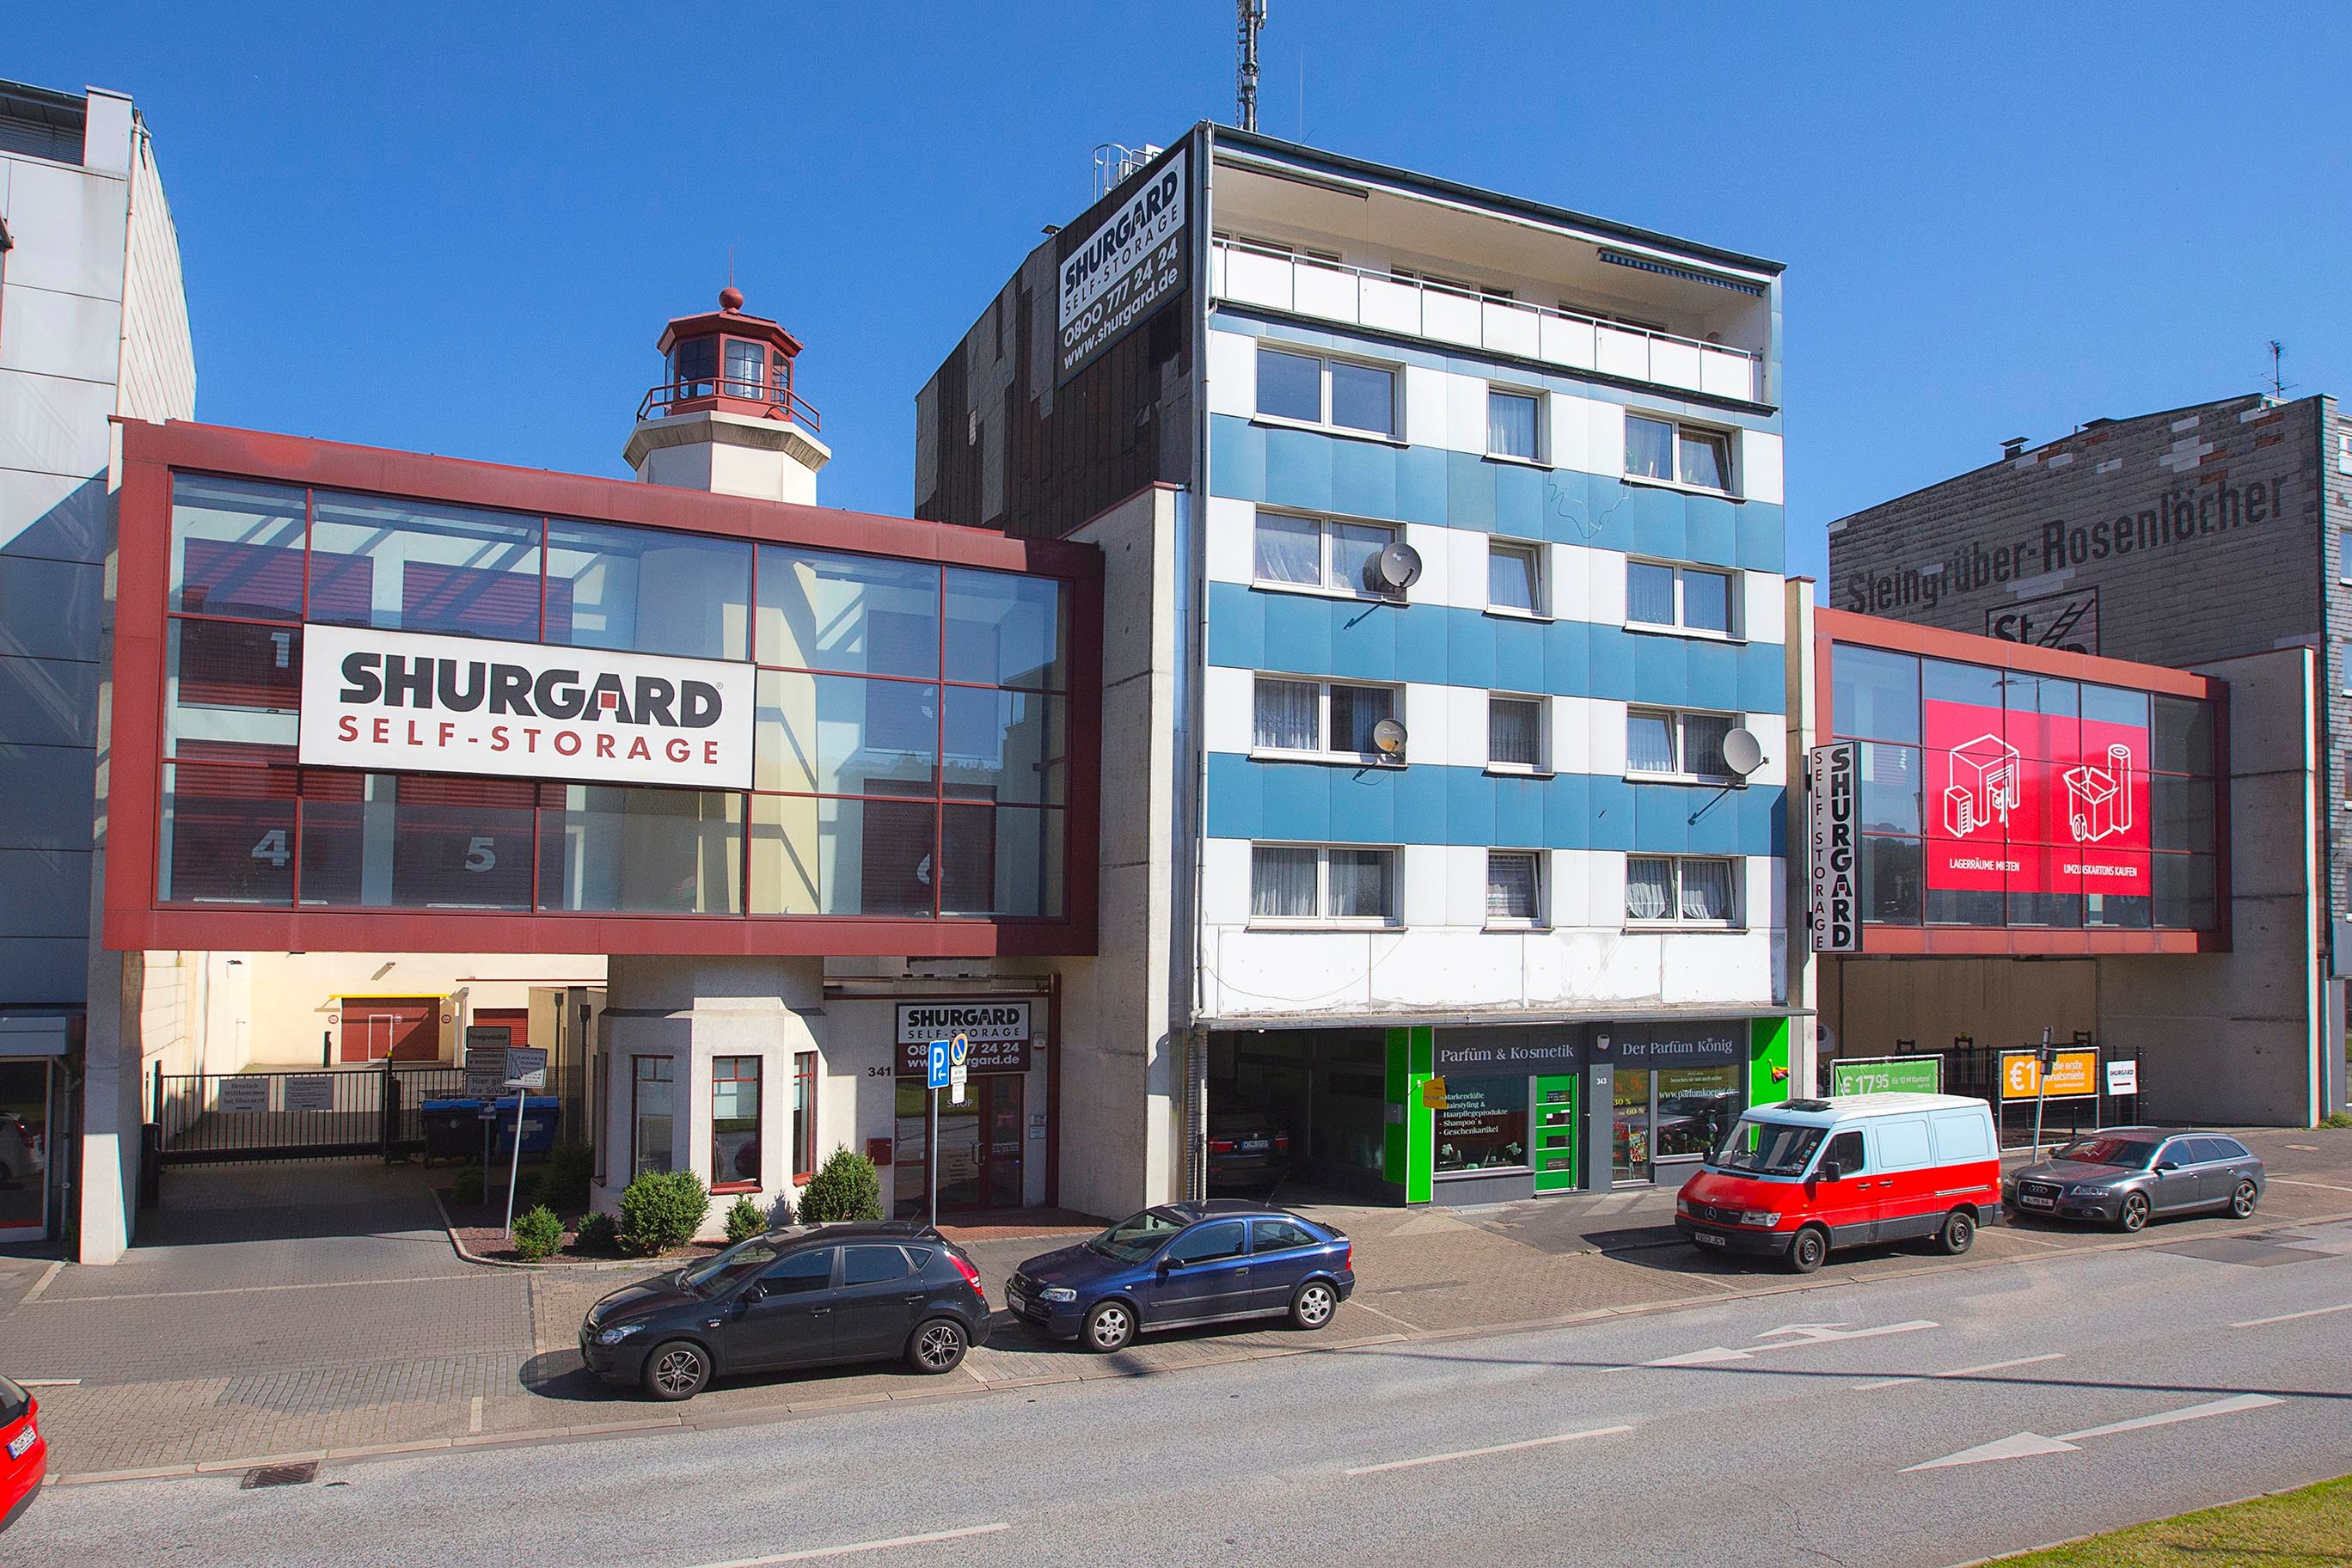 Bilder Shurgard Self-Storage Wuppertal